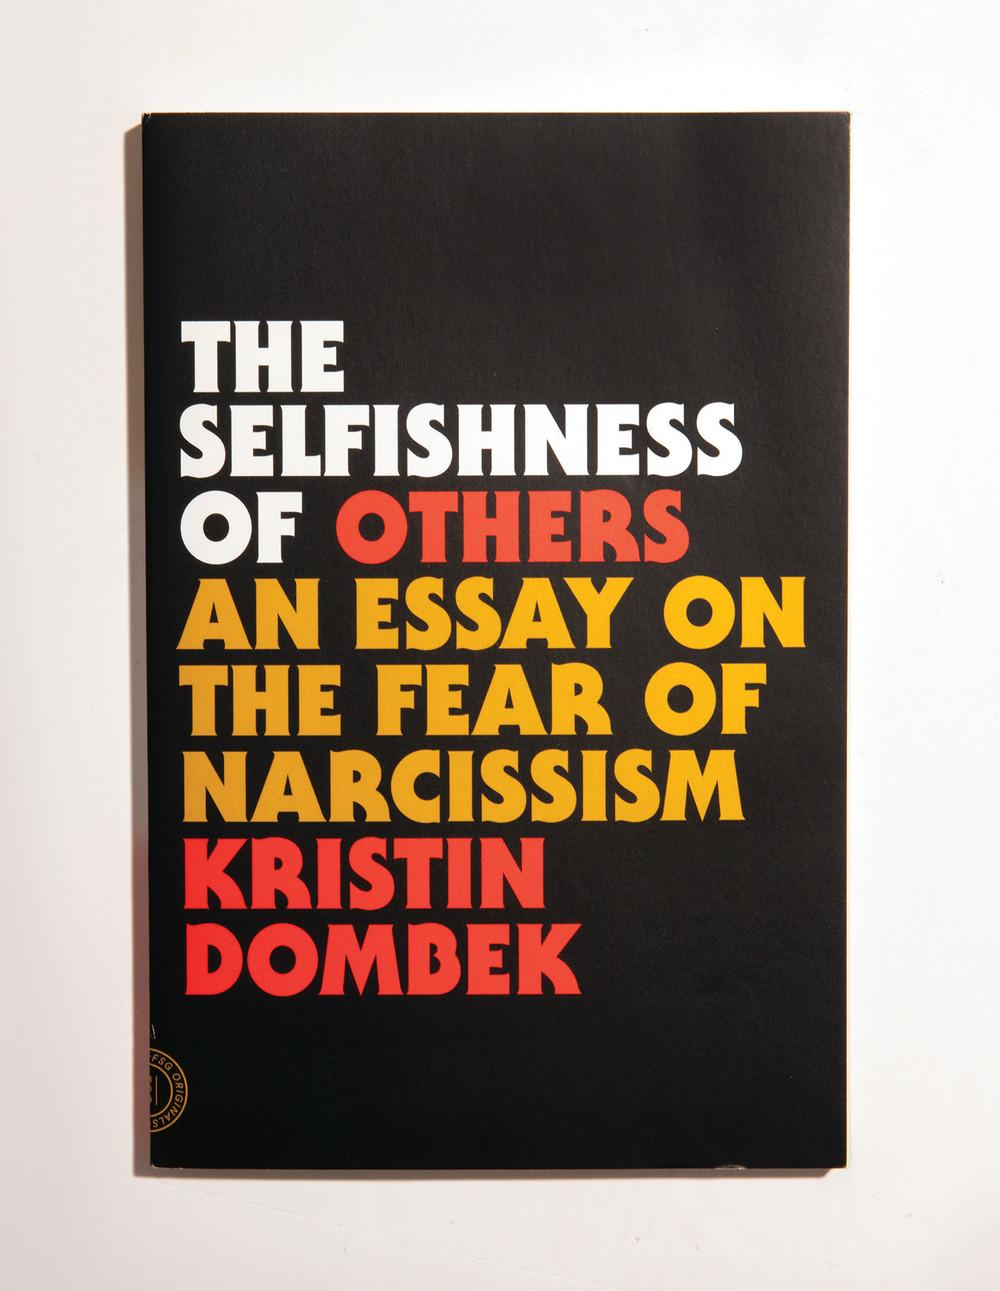 s best books albums film and tv  the selfishness of others an essay on the fear of narcissism